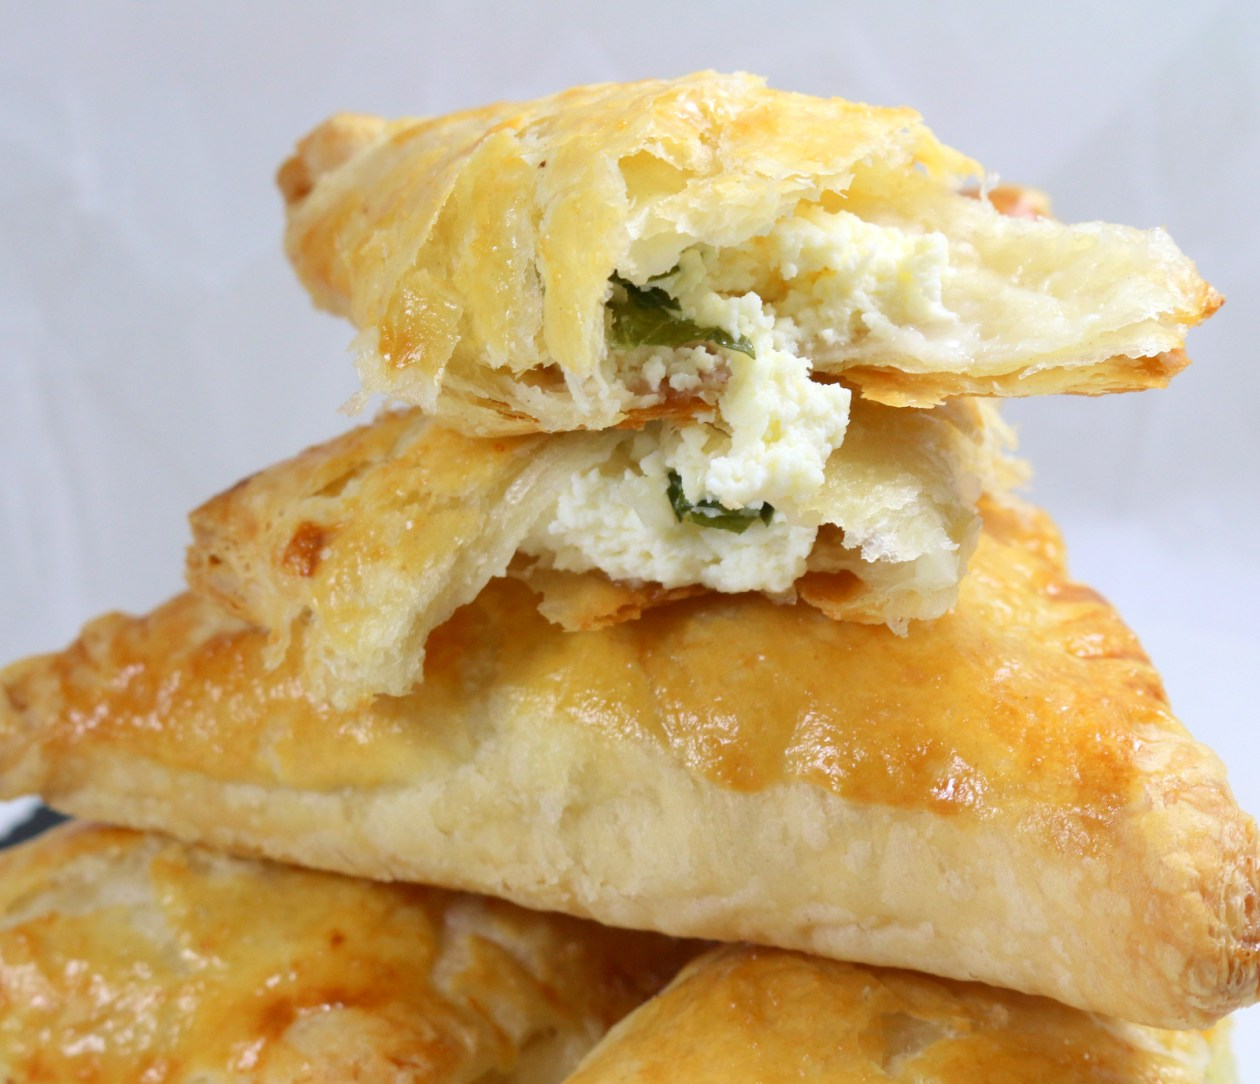 cheese puff pastry from the best food blog 5starcookies -enjoy and share